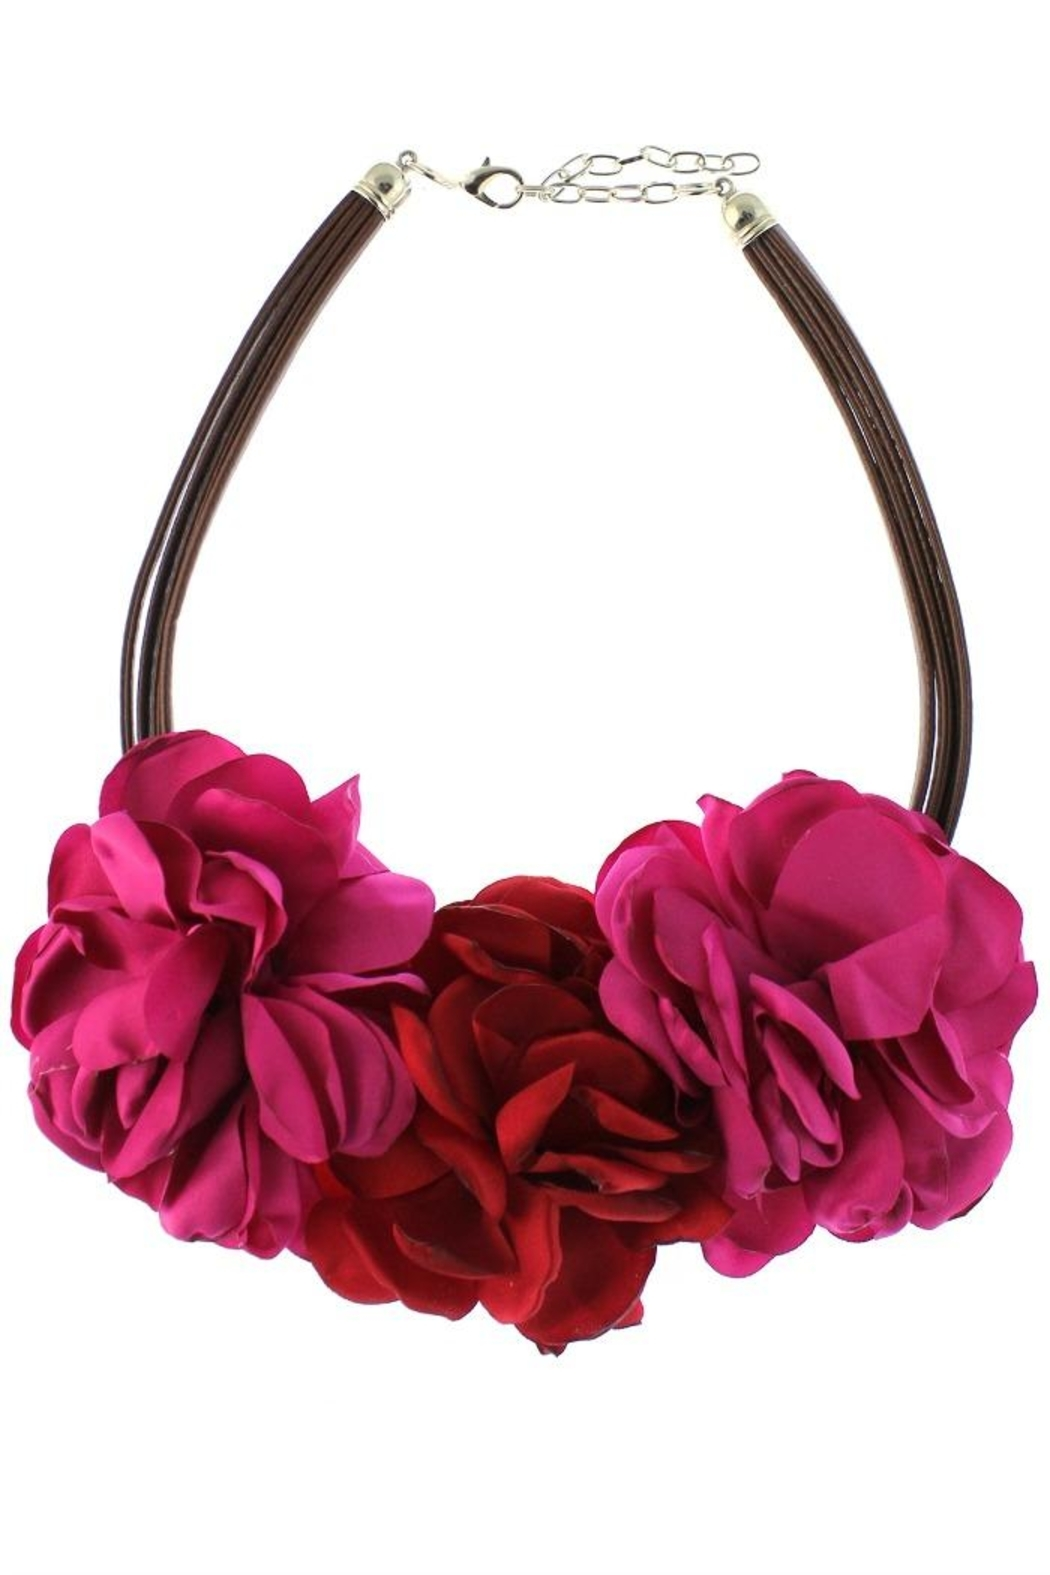 Patricia's Presents Red Floral Neckpiece - Main Image